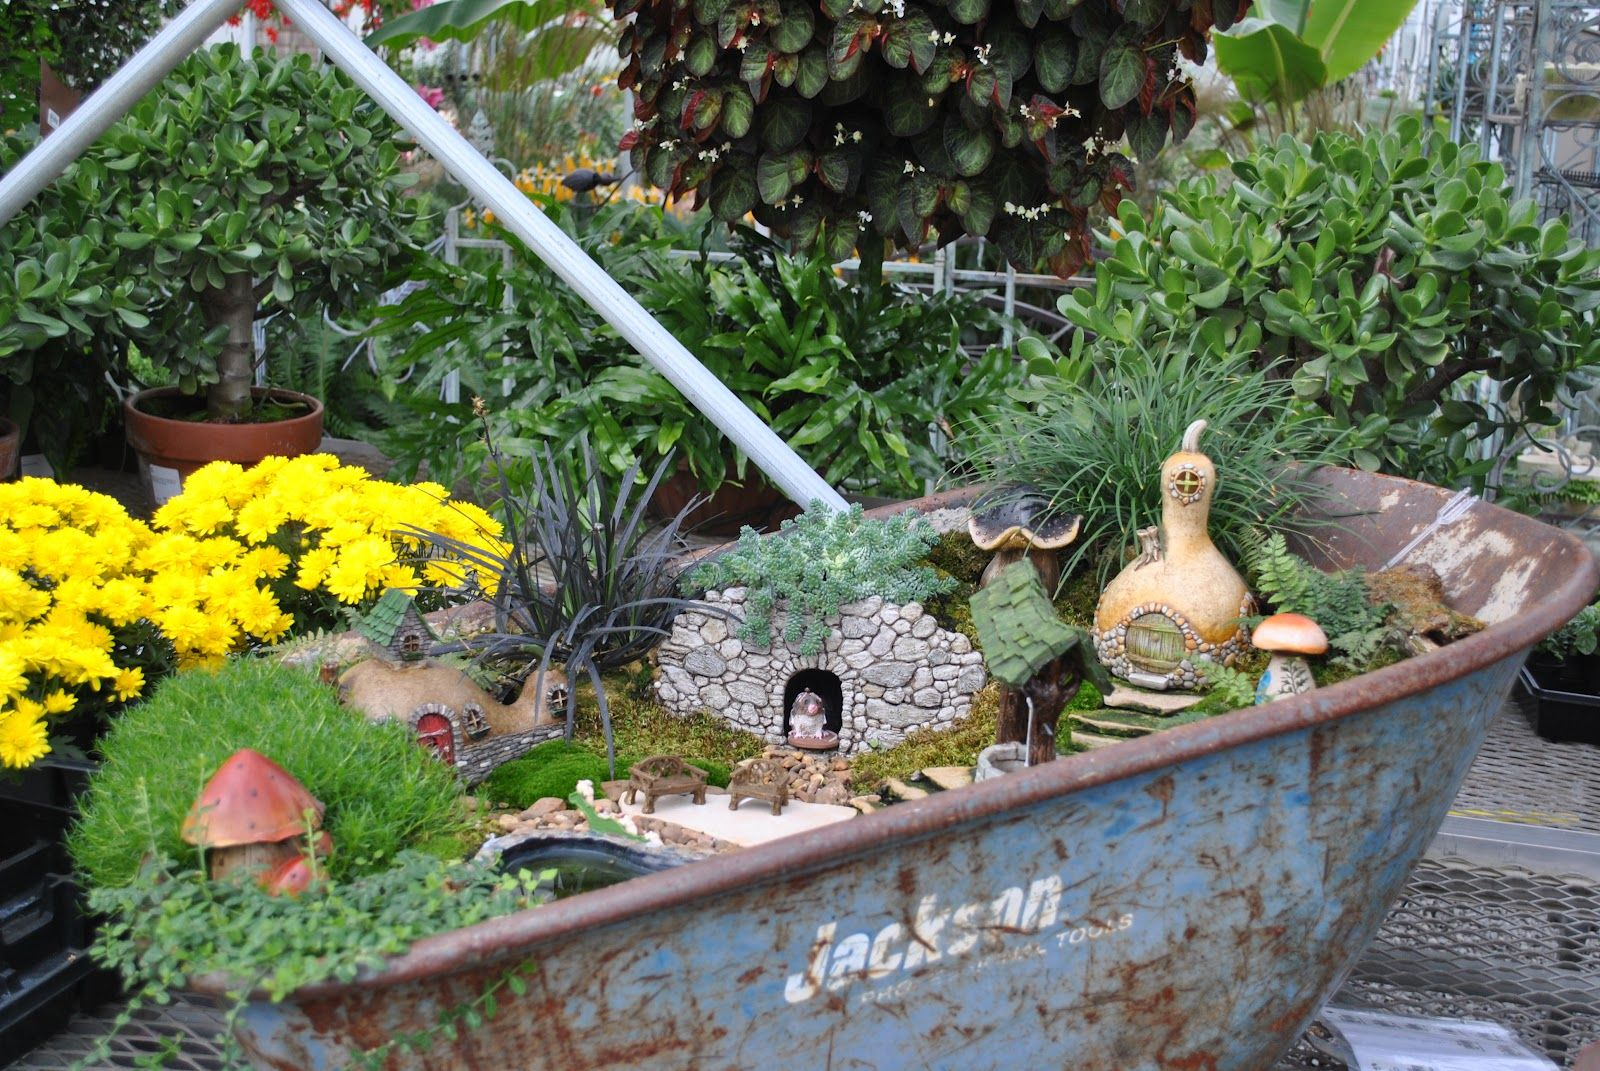 ... fairy garden. The next two pictures are some close ups of the wheel